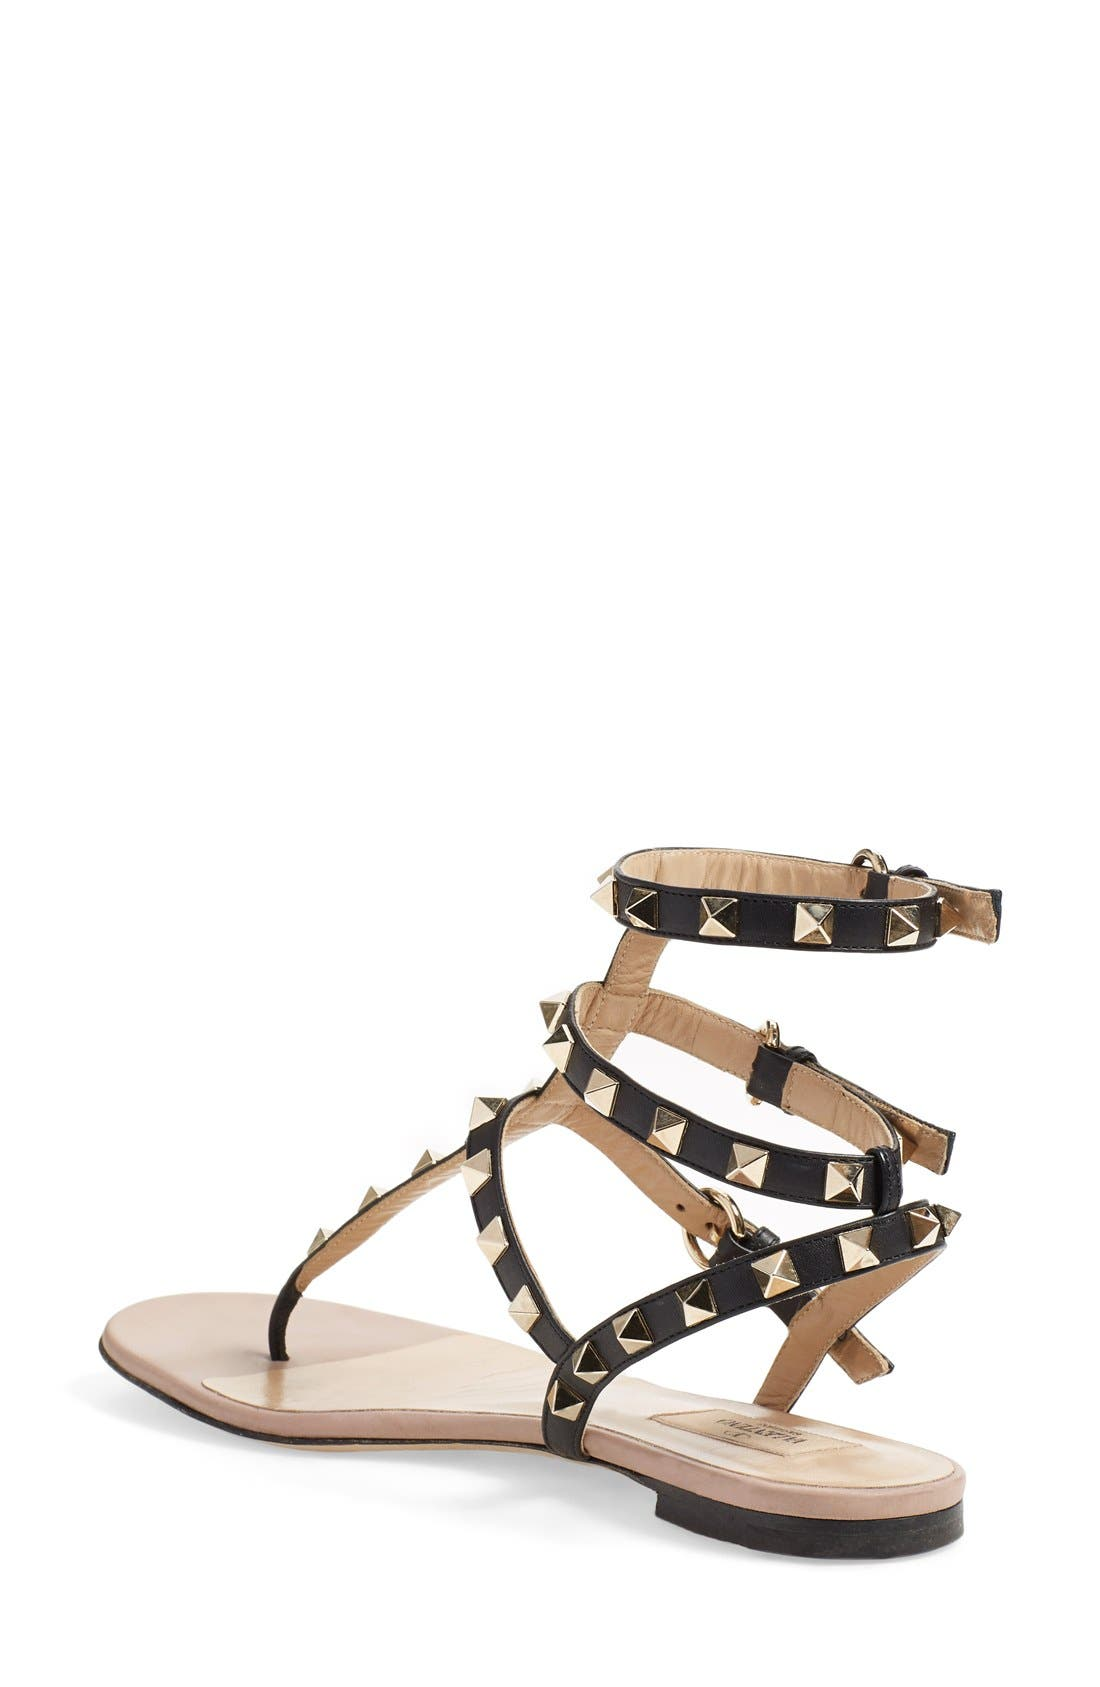 'Rockstud' Sandal,                             Alternate thumbnail 4, color,                             BLACK LEATHER